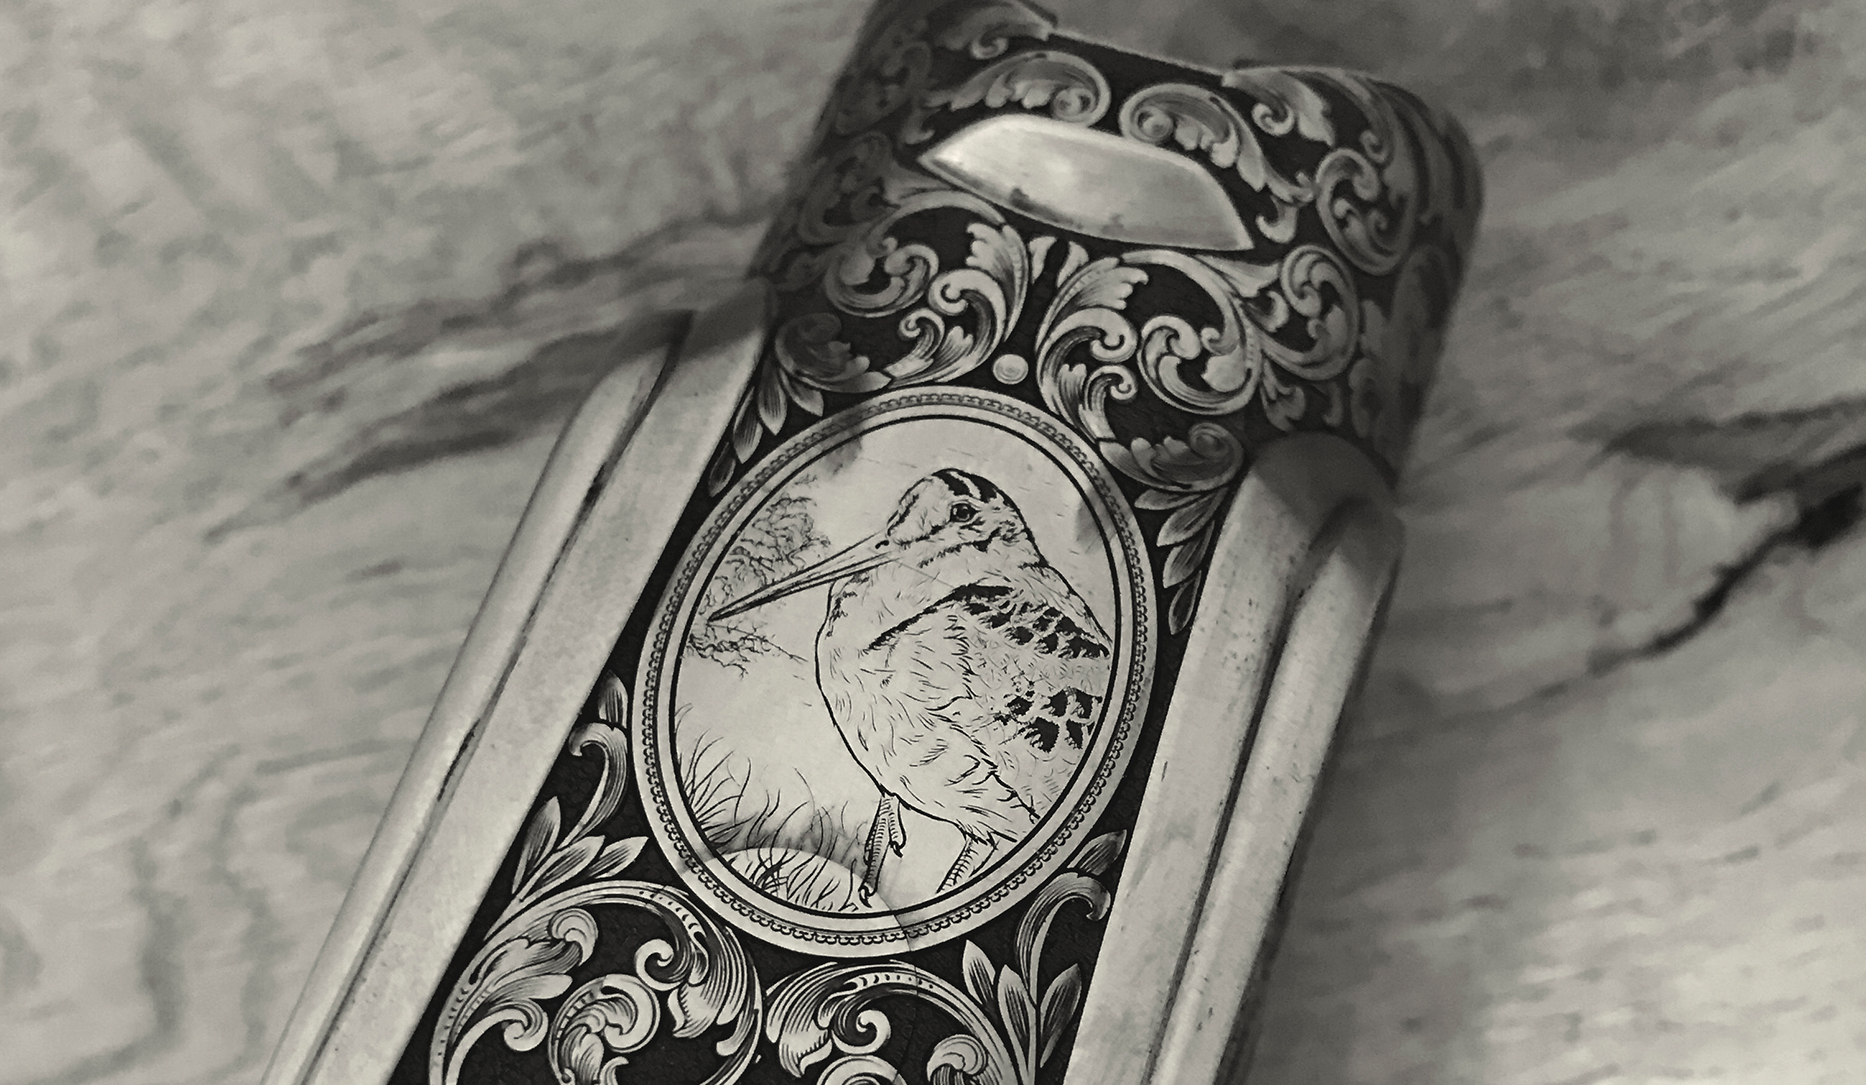 12b Square action woodcock engraving on base of action.jpg